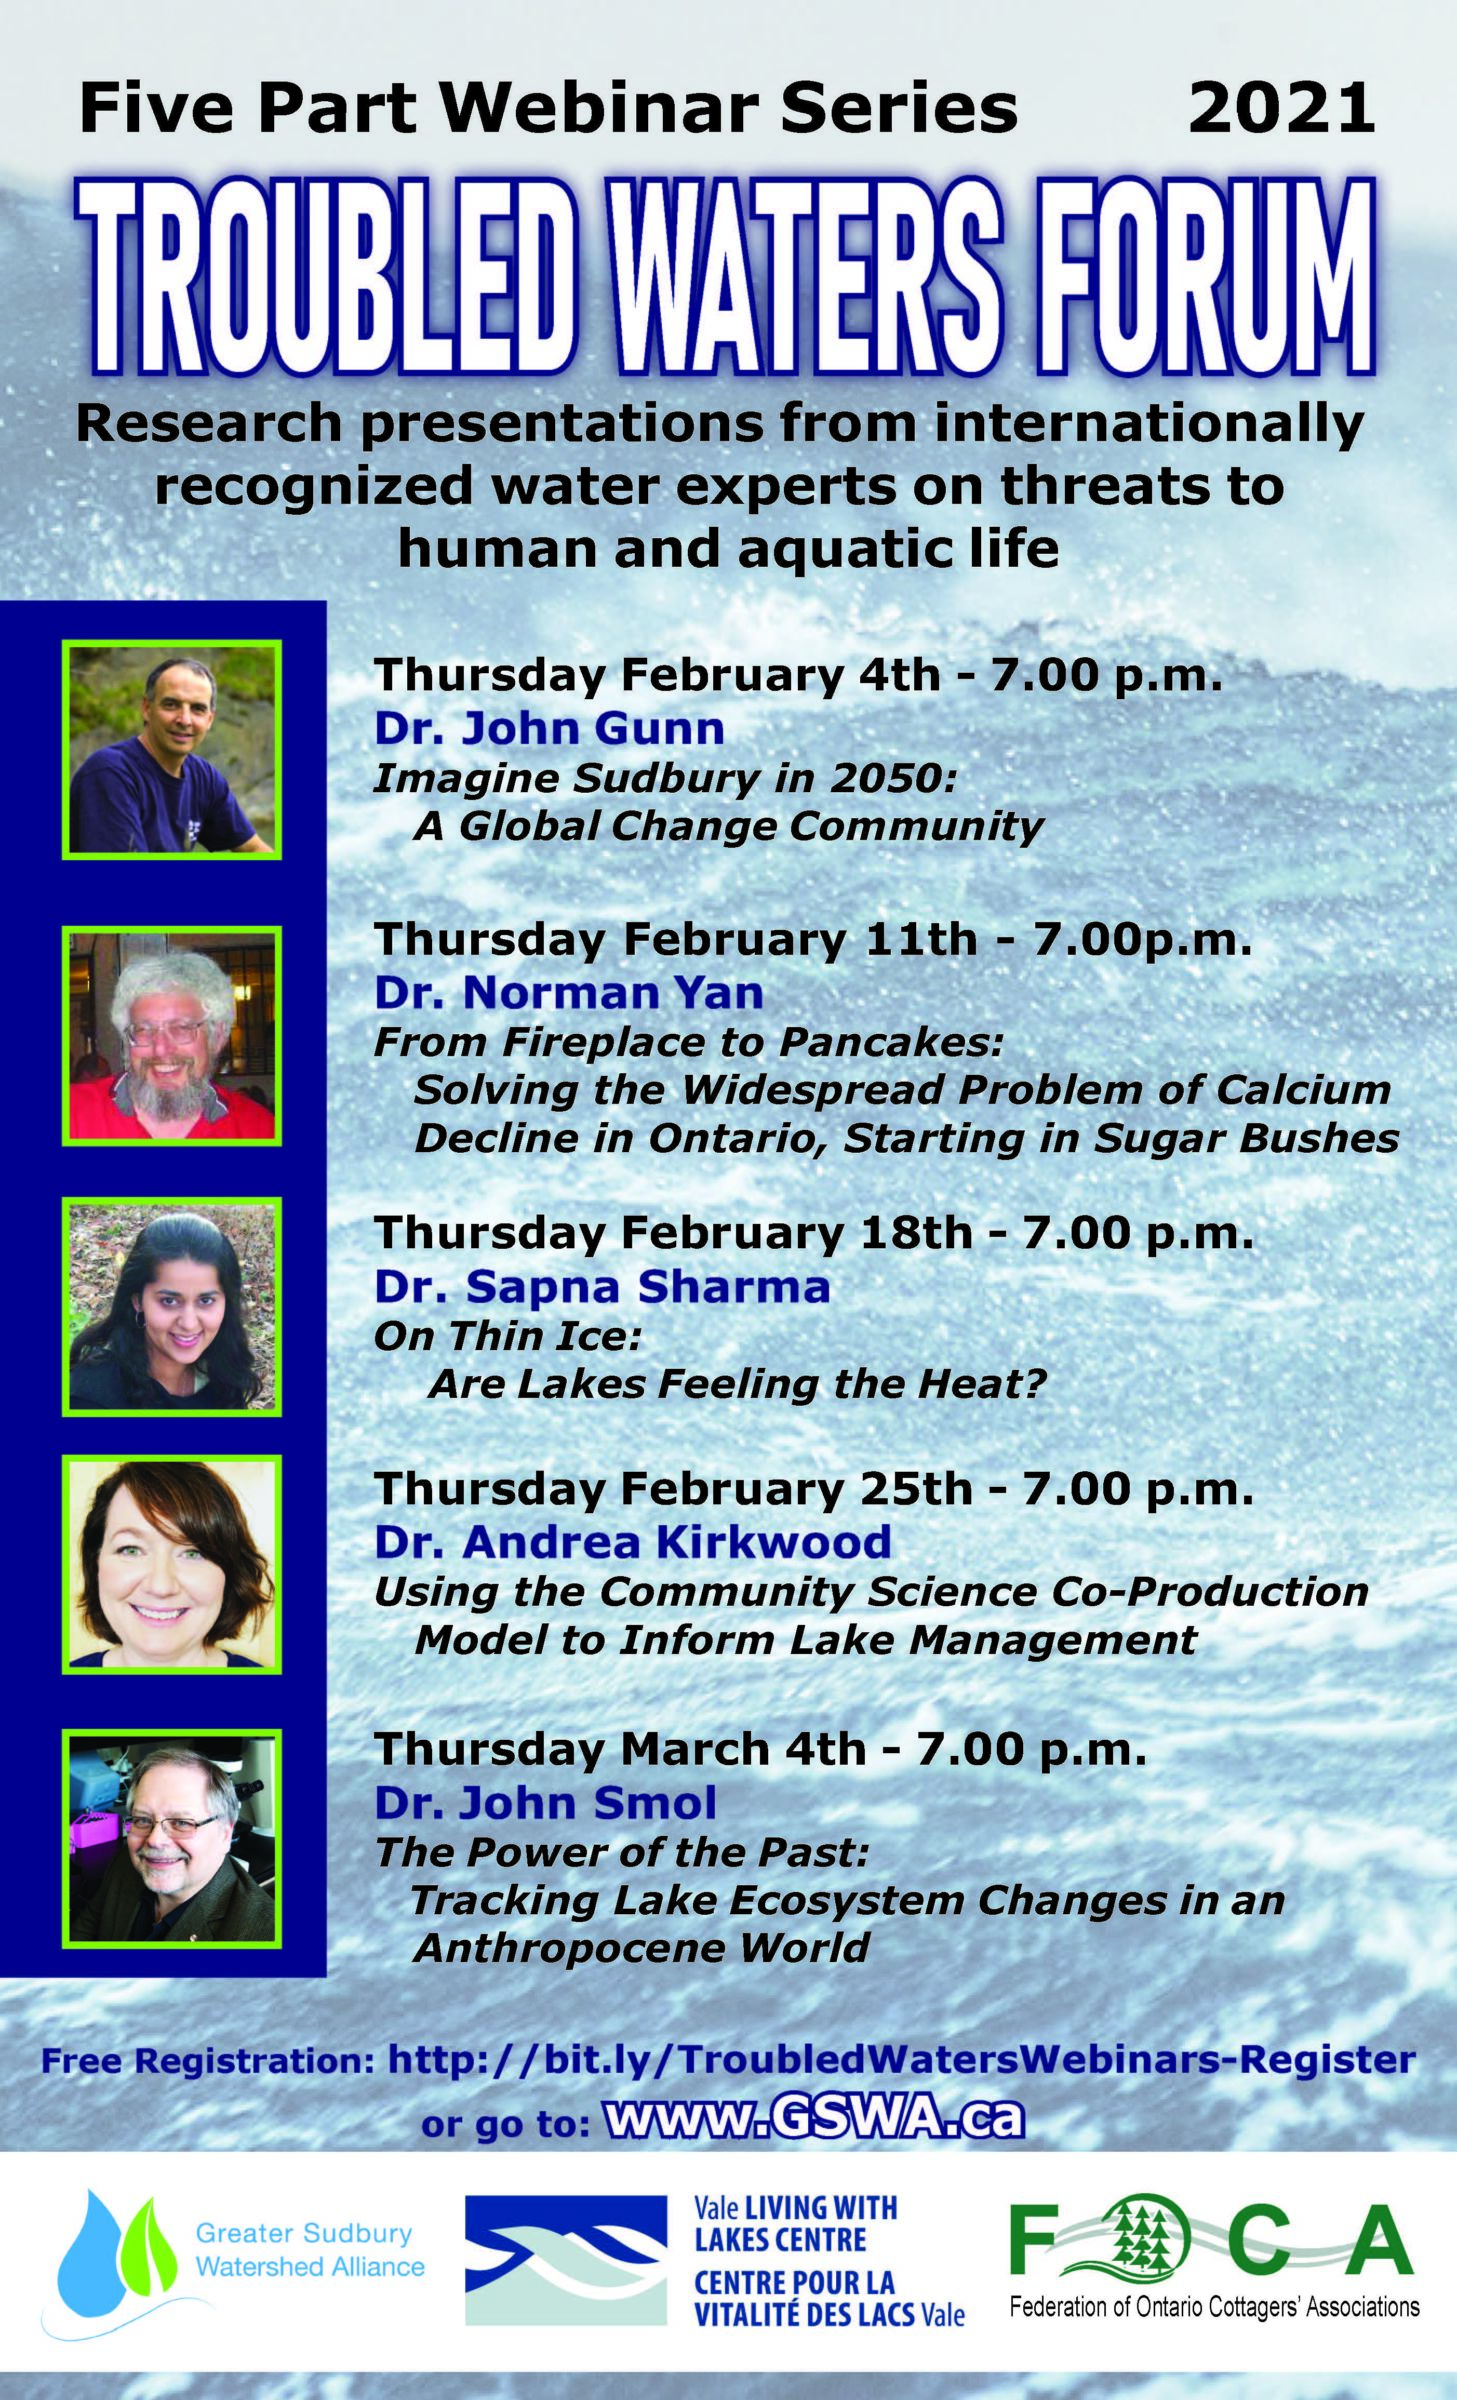 Research presentations from internationally recognized water experts on threats to human and aquatic life